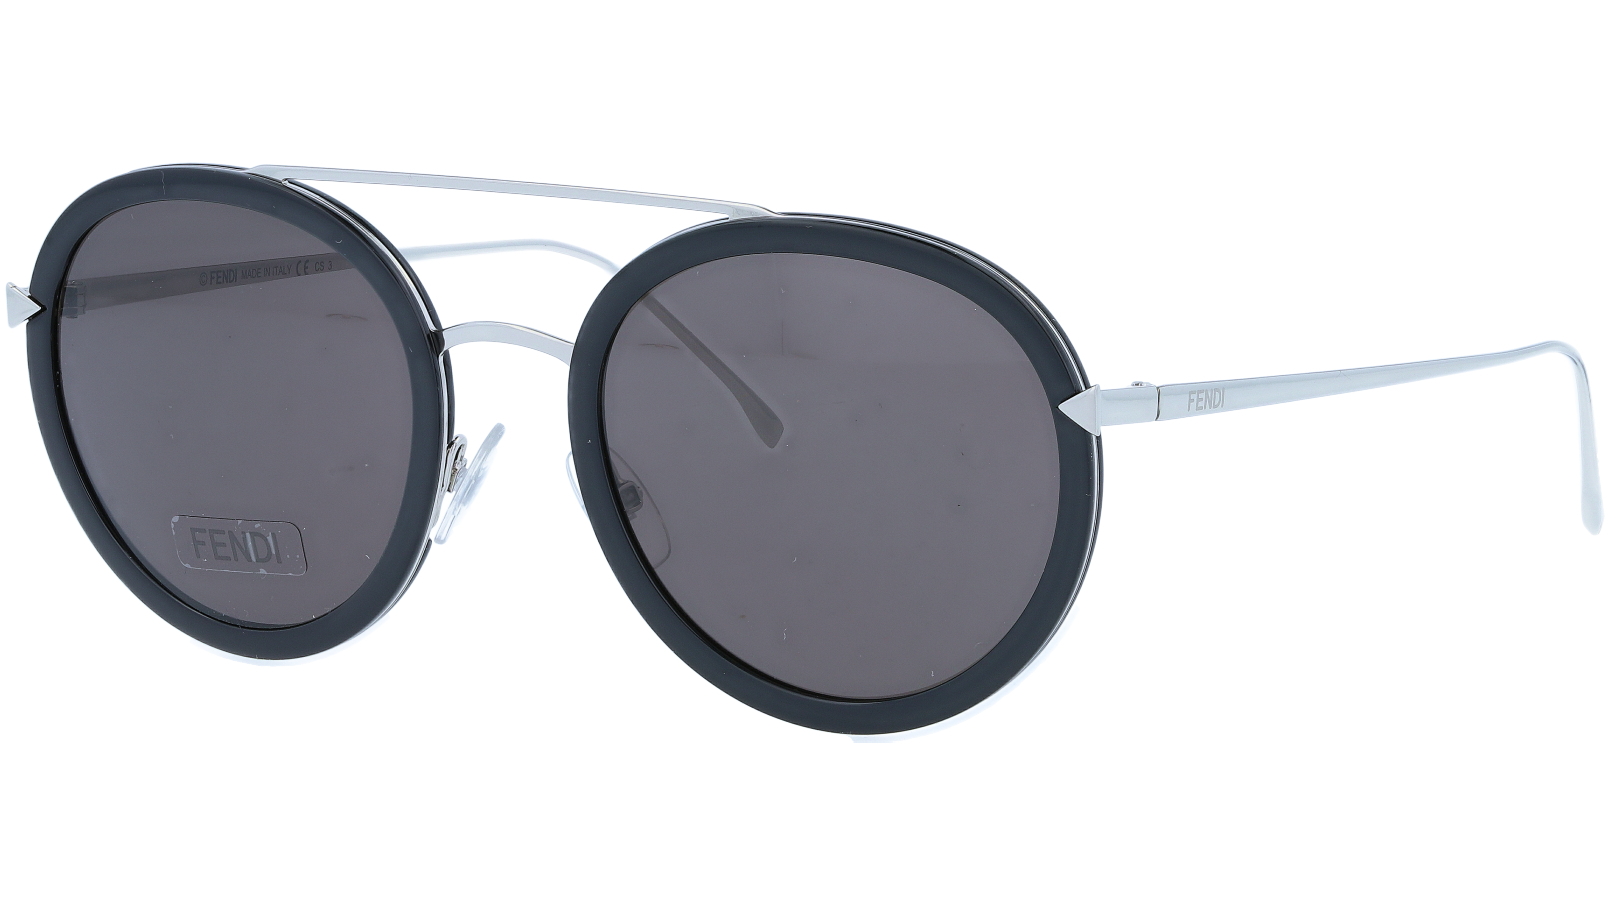 FENDI FF0156/S RMGNR 51 Black Round Sunglasses